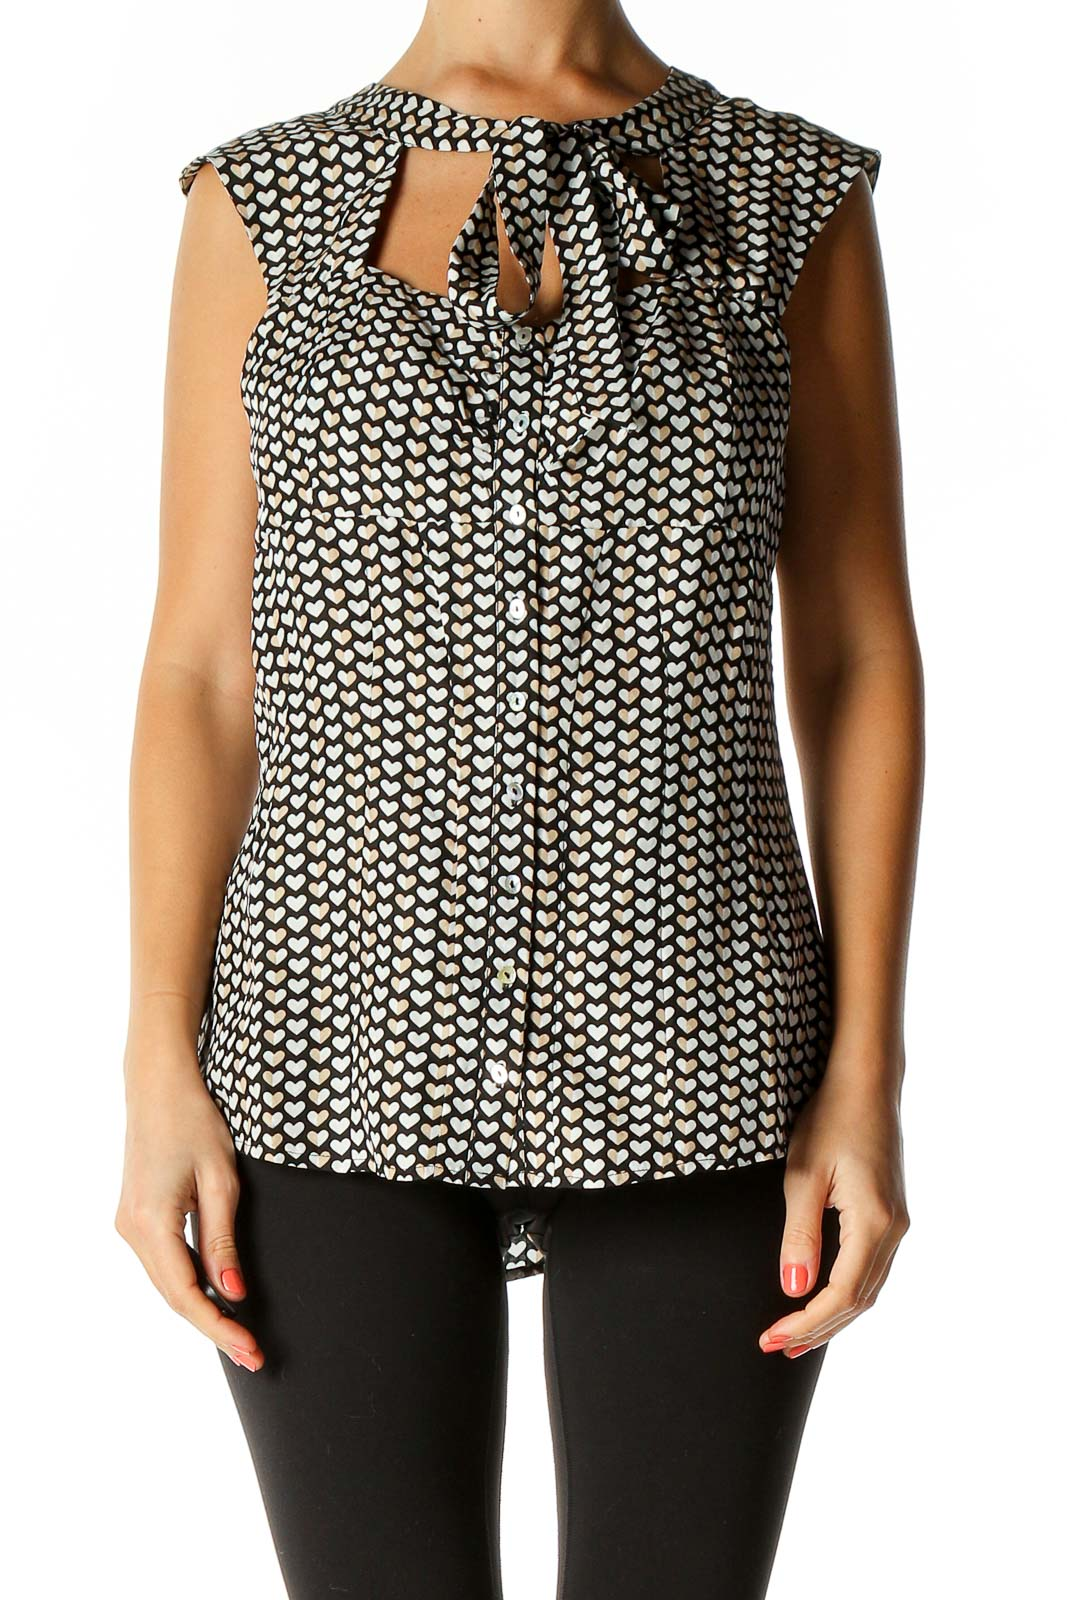 Beige Object Print Chic Blouse Front